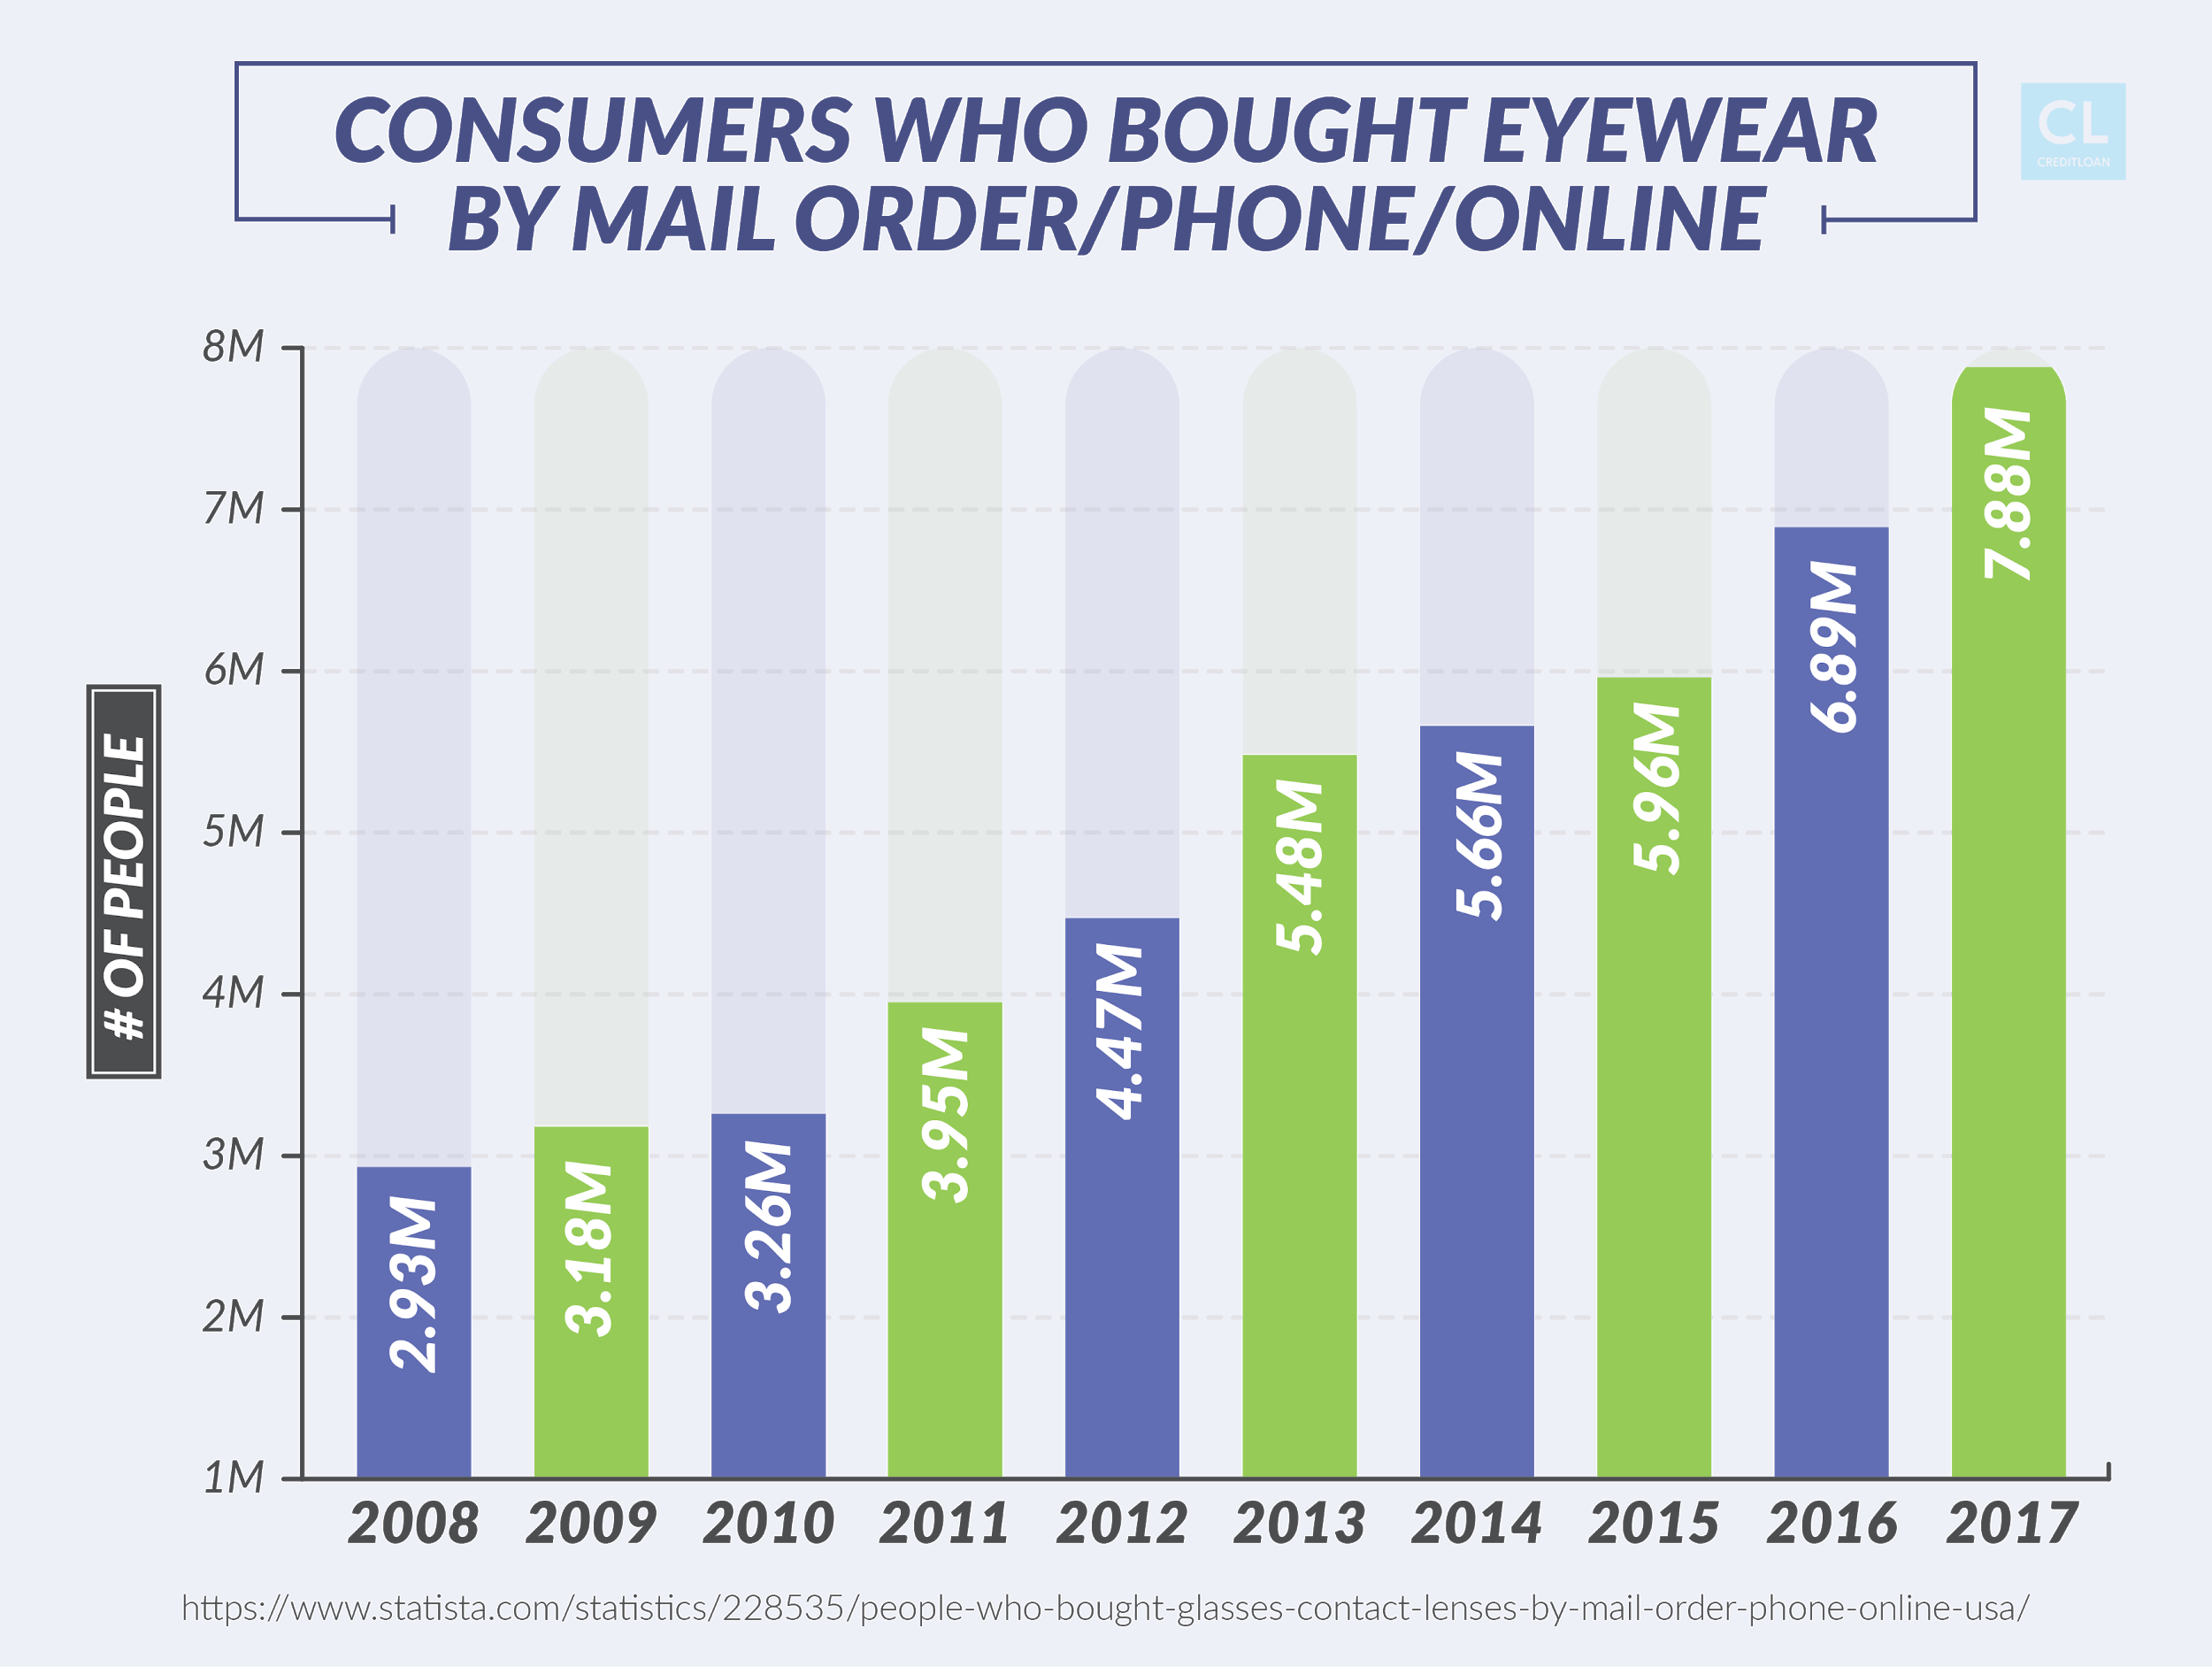 Consumers Who Bought Eyewear By Mail Order/Phone/Online from 2008-2017